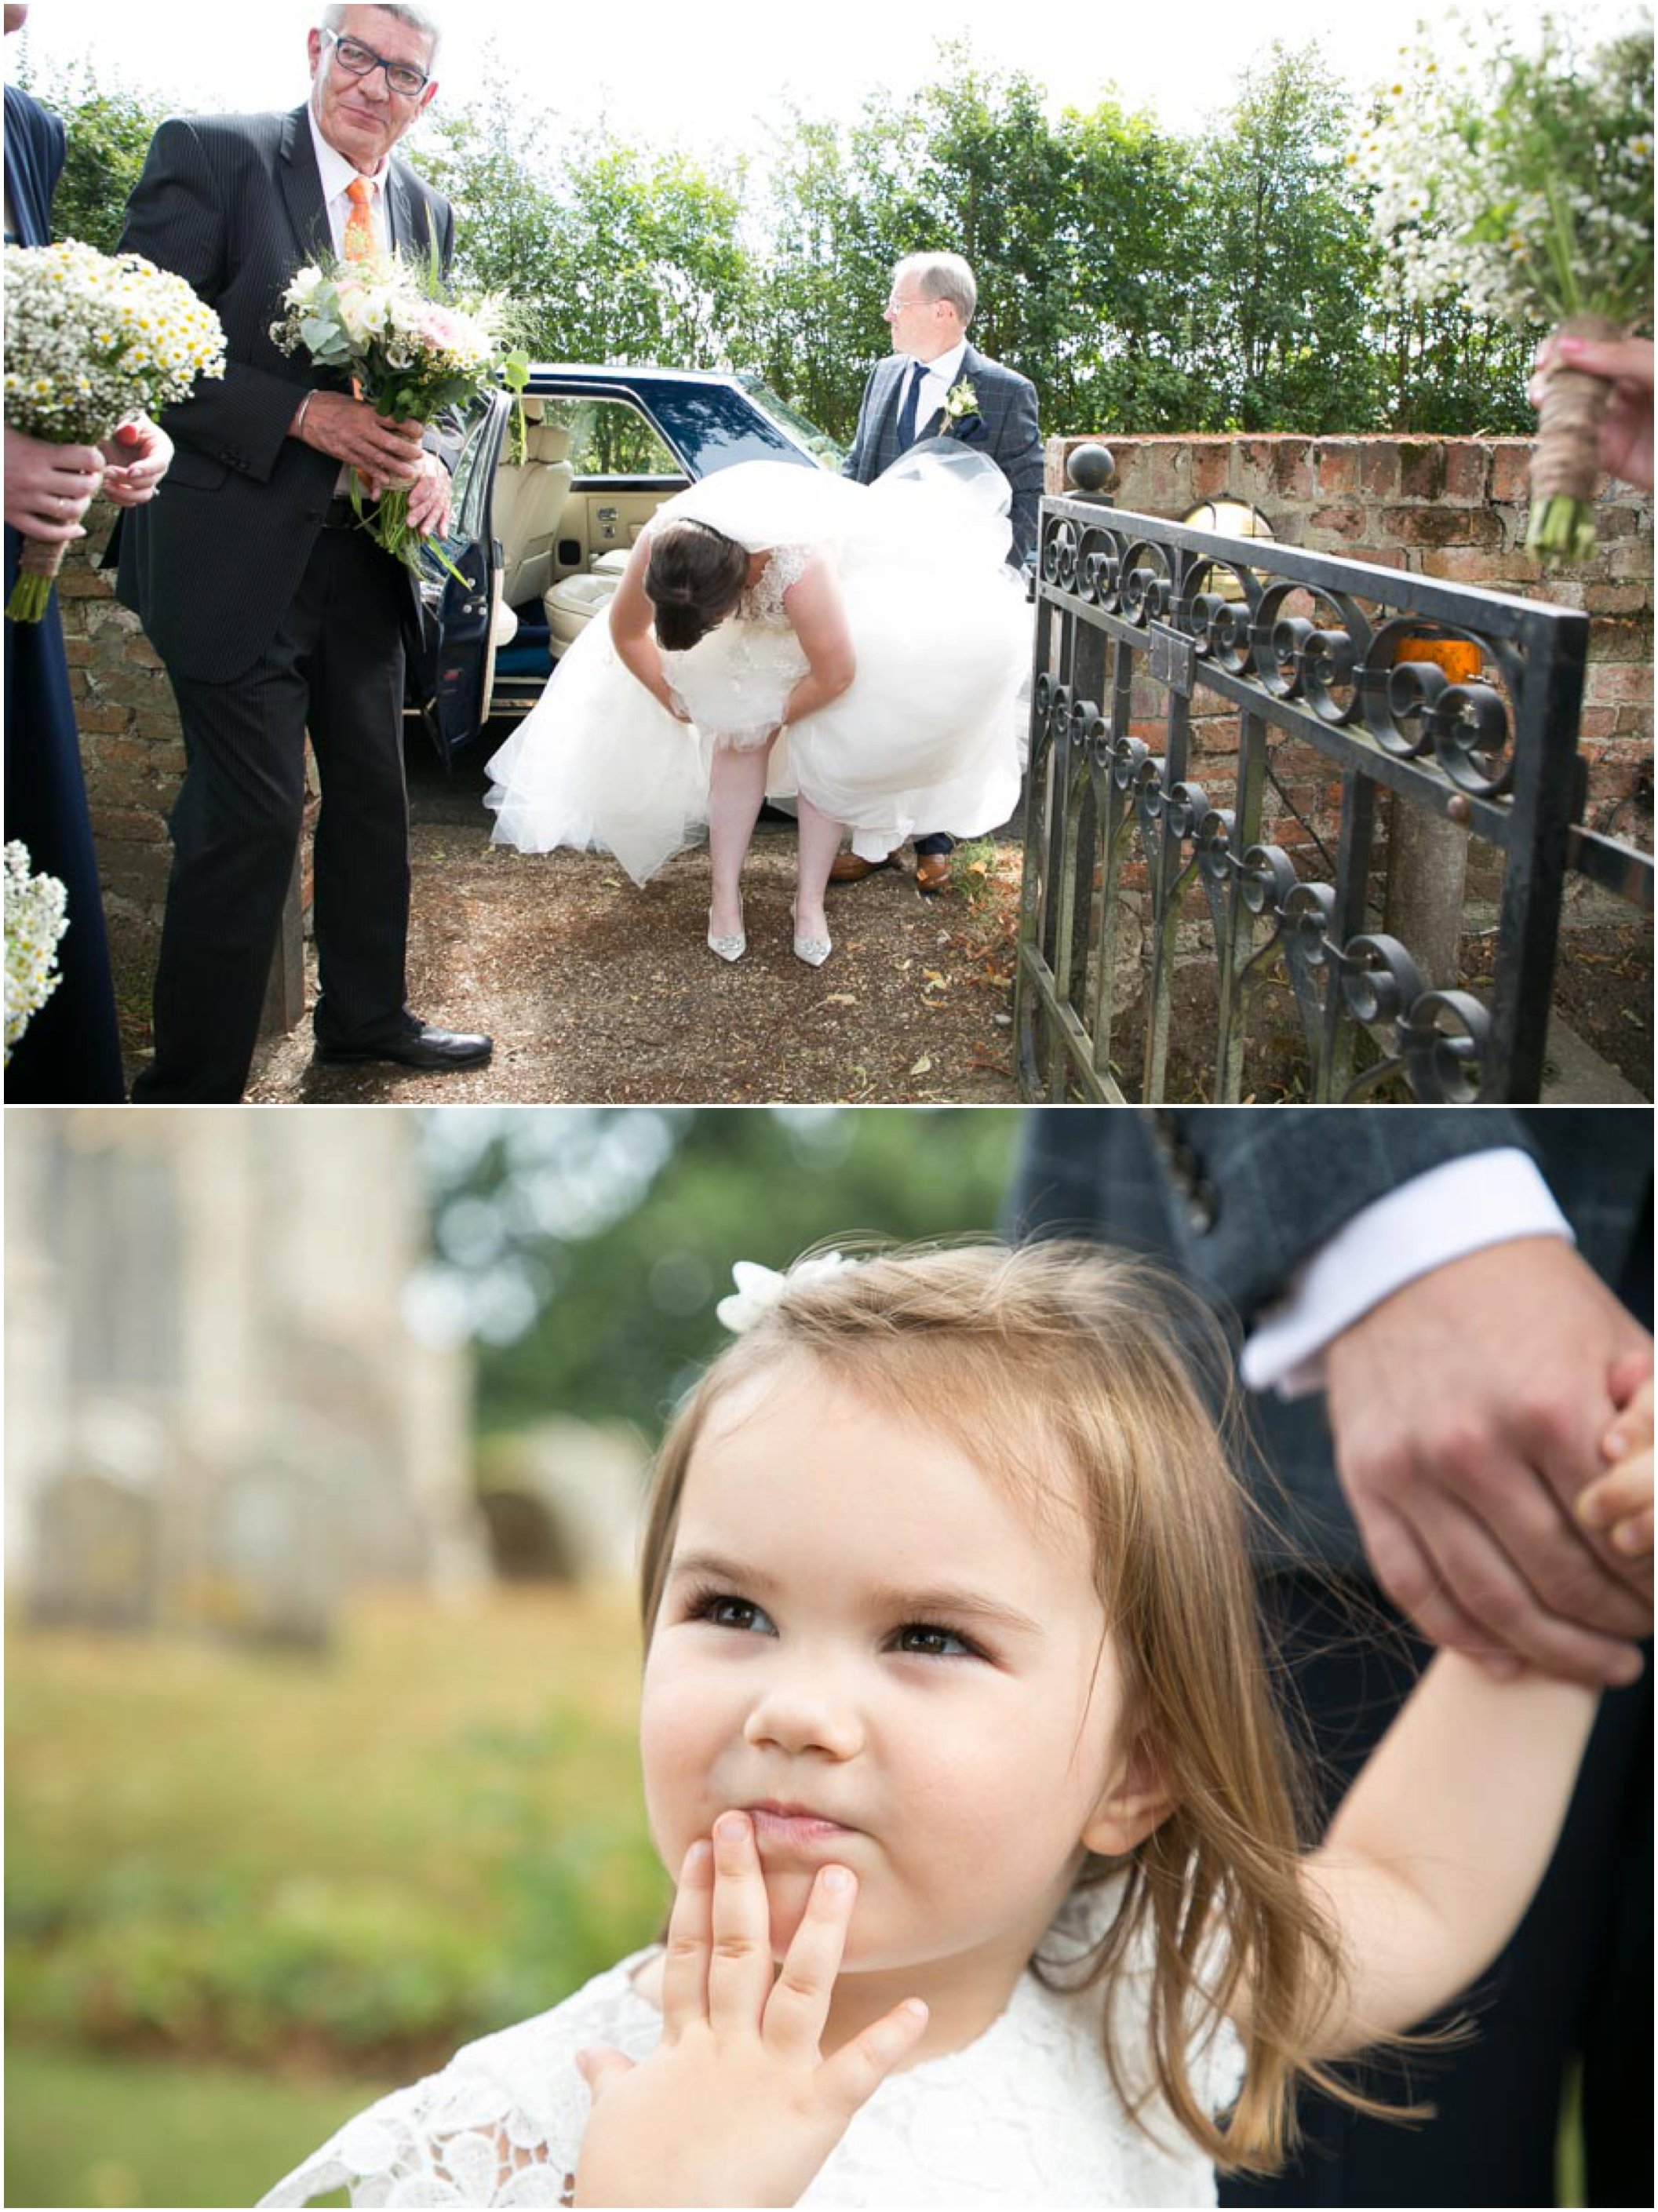 bride arranging garter at wedding and small girl